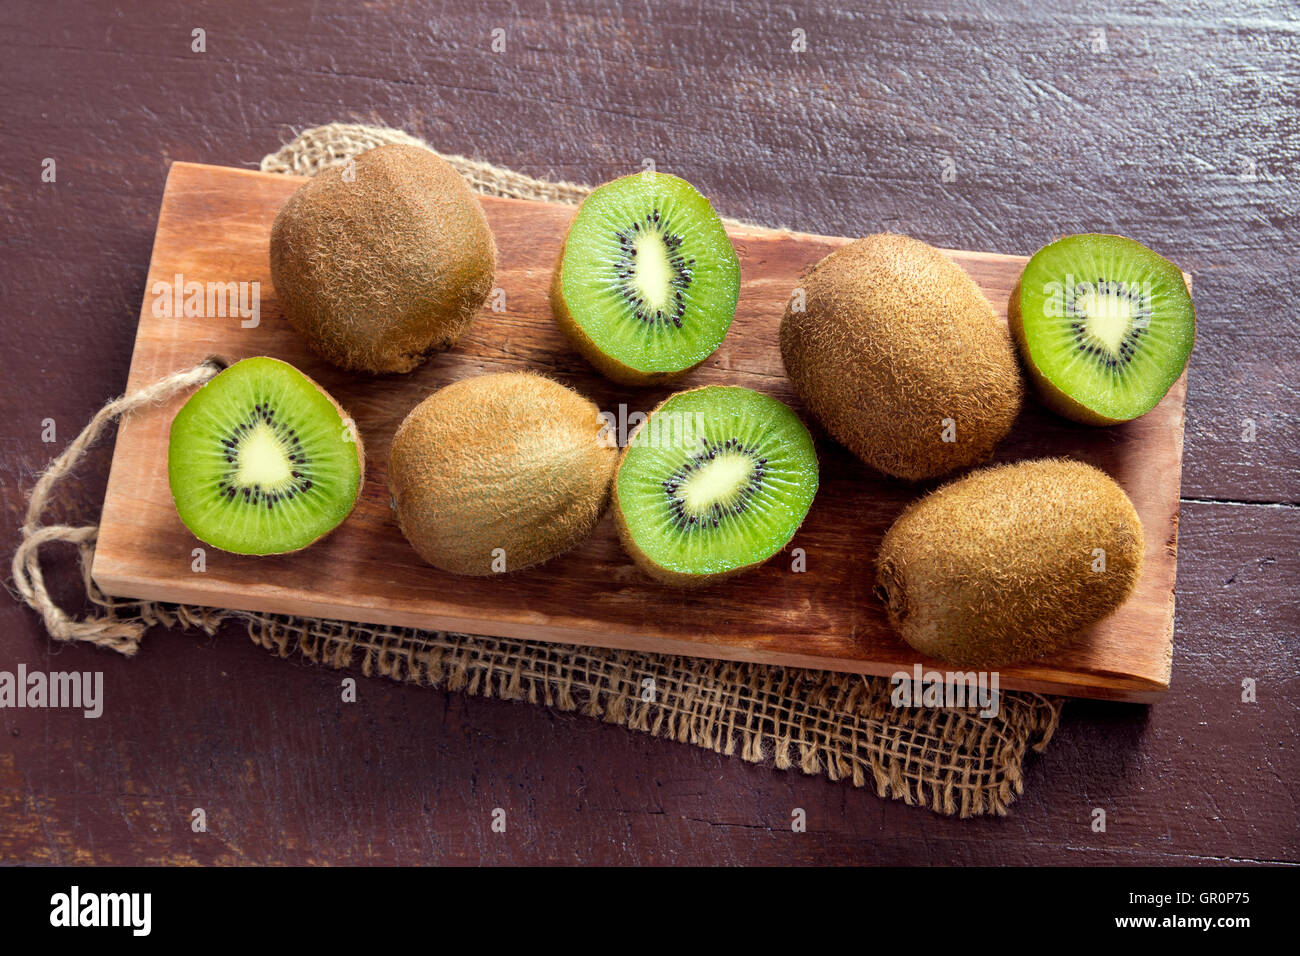 Kiwi fruits on wooden background - Stock Image